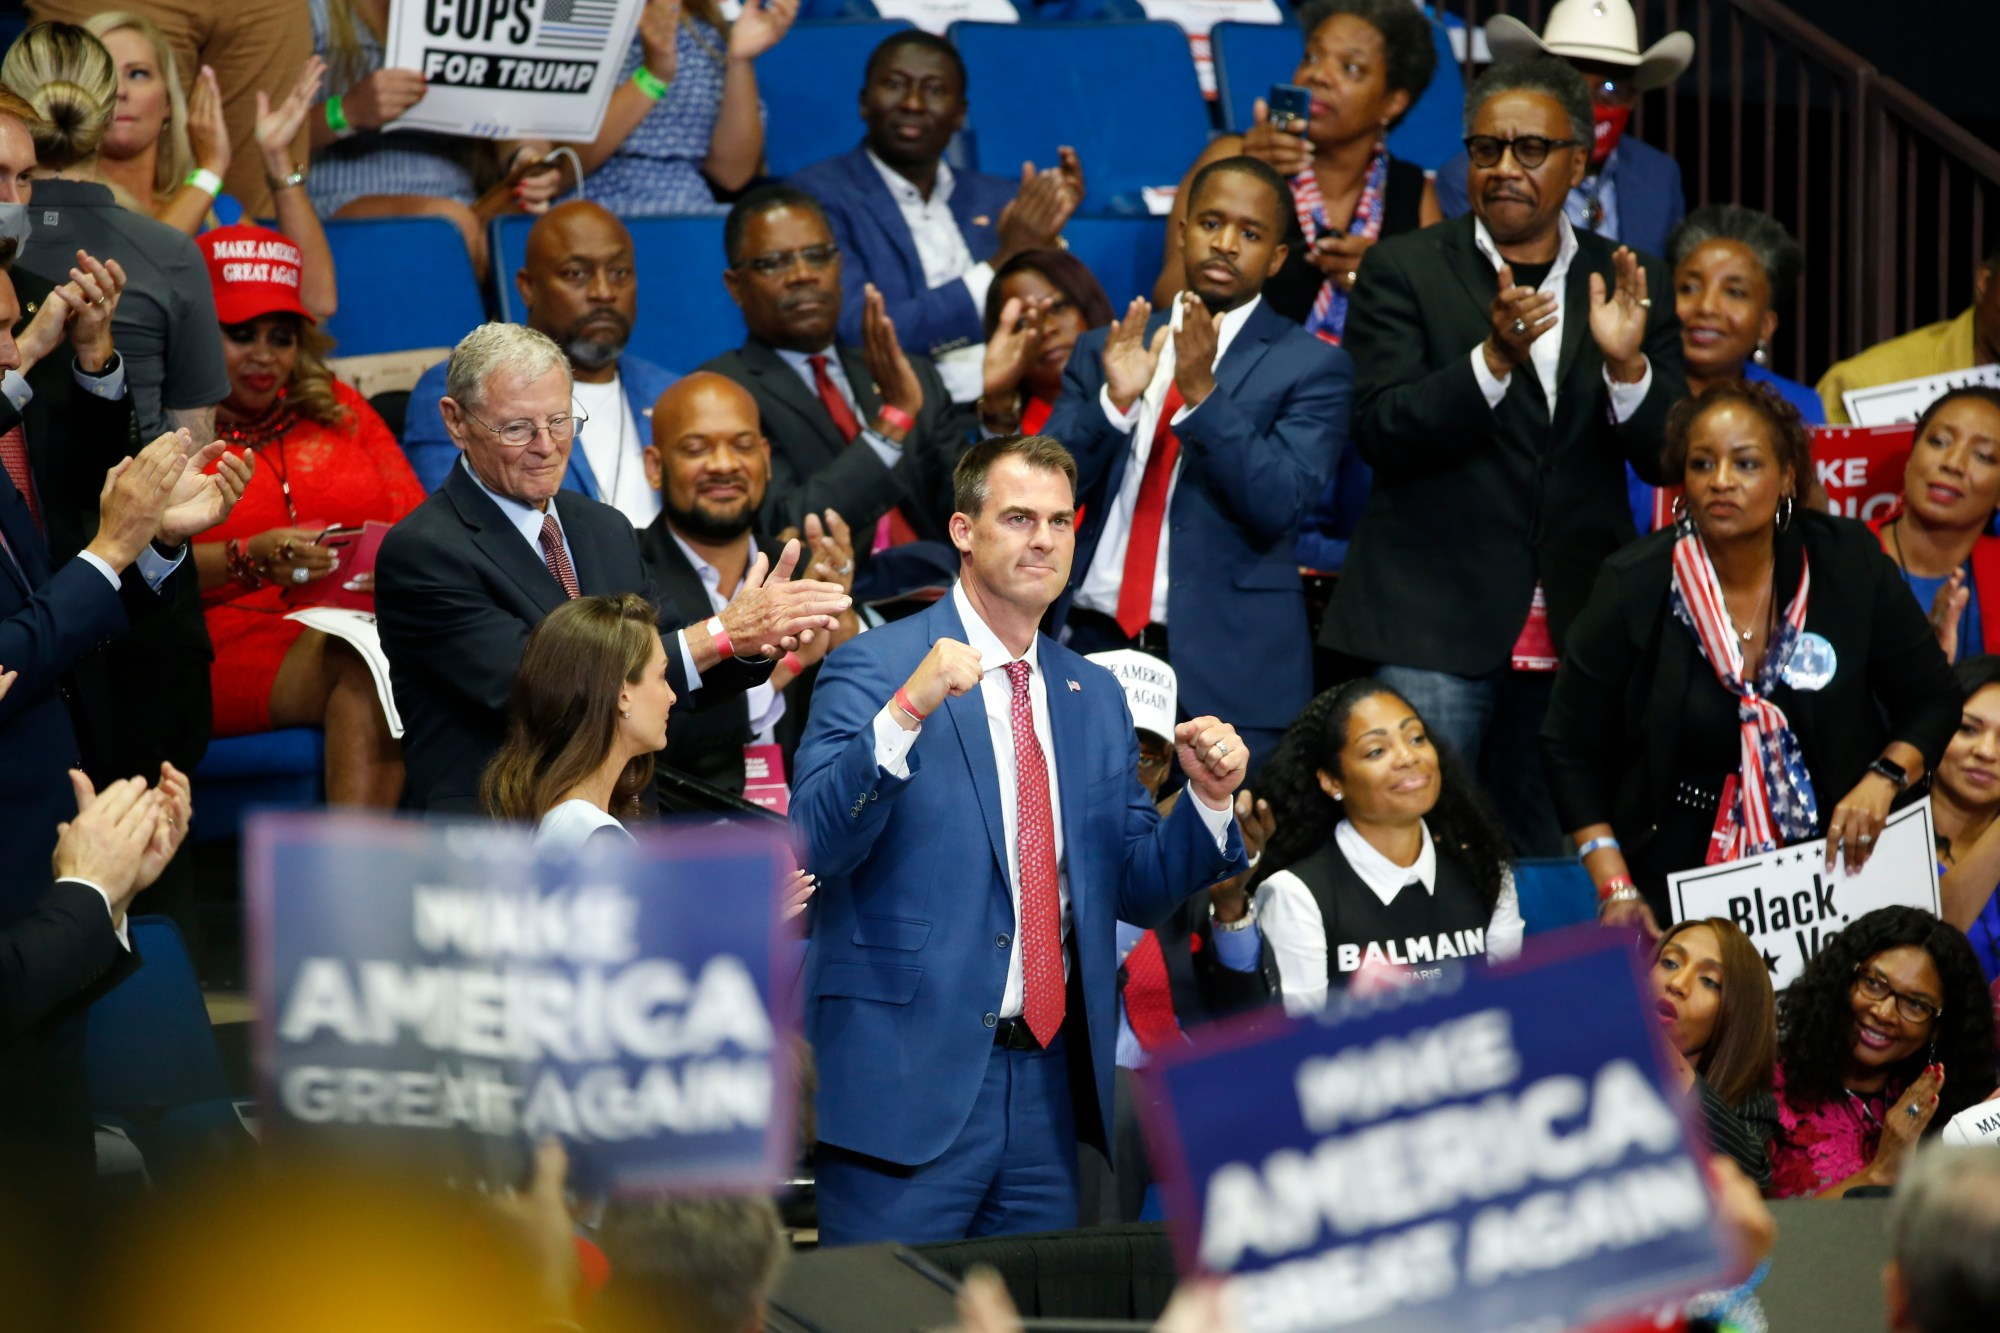 In this June 20, 2020 photo, Oklahoma Gov. Kevin Stitt is recognized as President Donald Trump speaks during a campaign rally at the BOK Center, in Tulsa, Okla. (AP Photo/Sue Ogrocki, File)